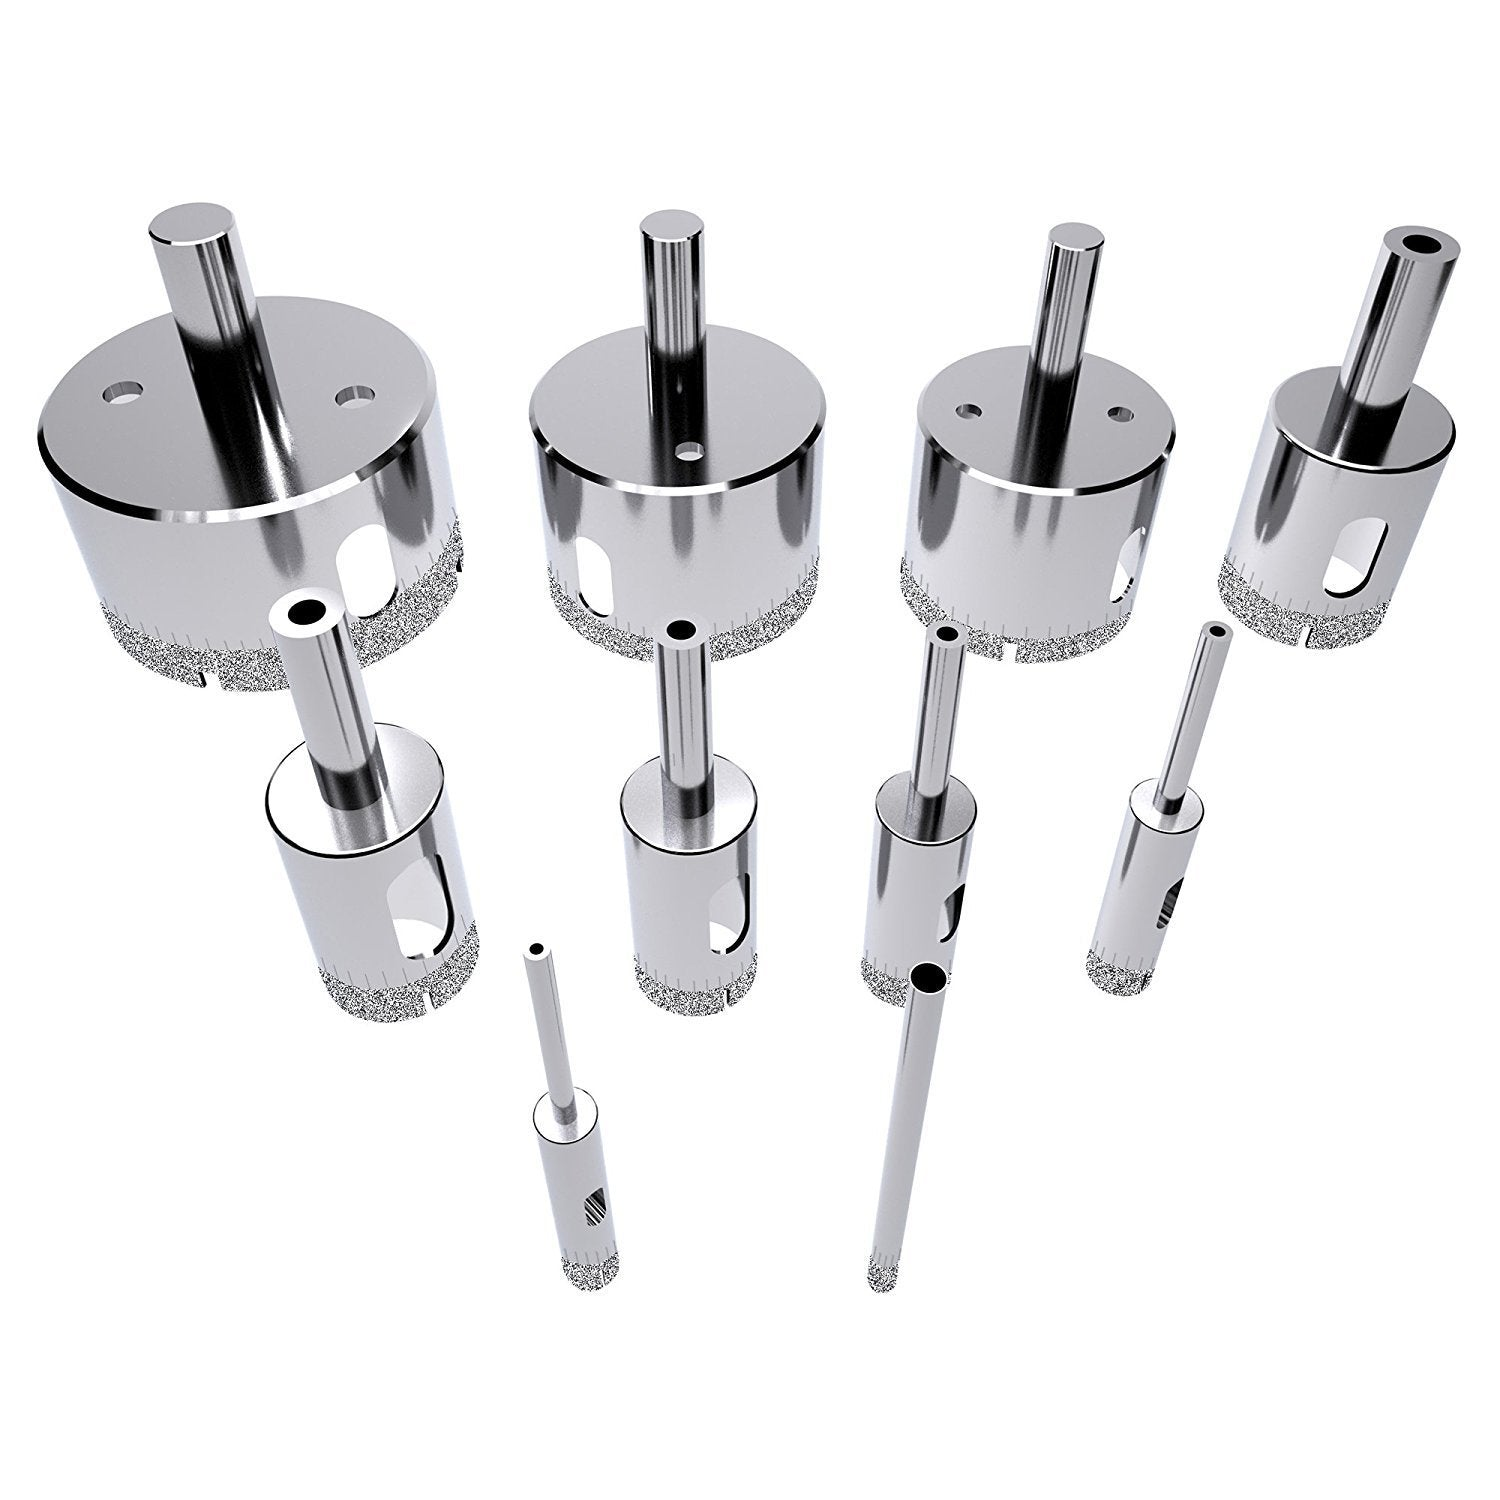 Diamond Coated Drill Bits (Set of 10) - smileyhomey